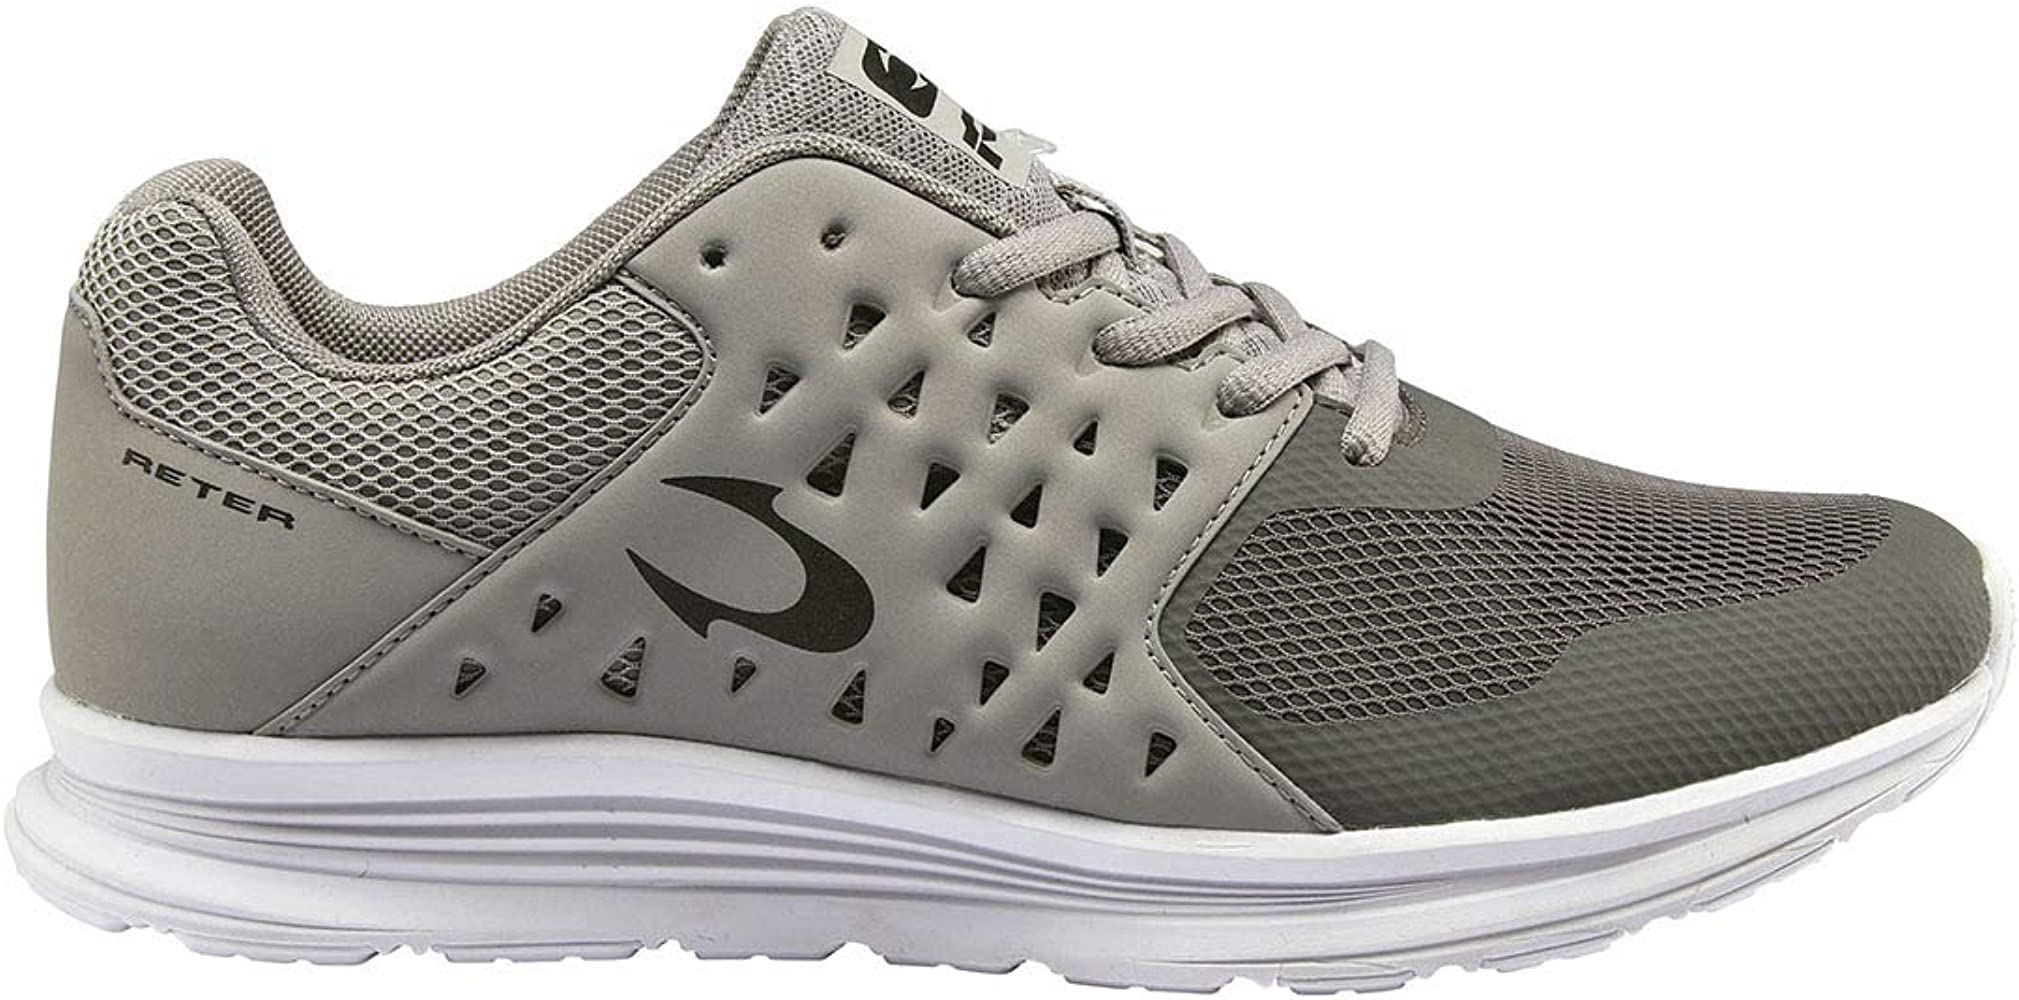 John Smith Zapatillas Running Reter 18i Gris Claro: Amazon.es ...